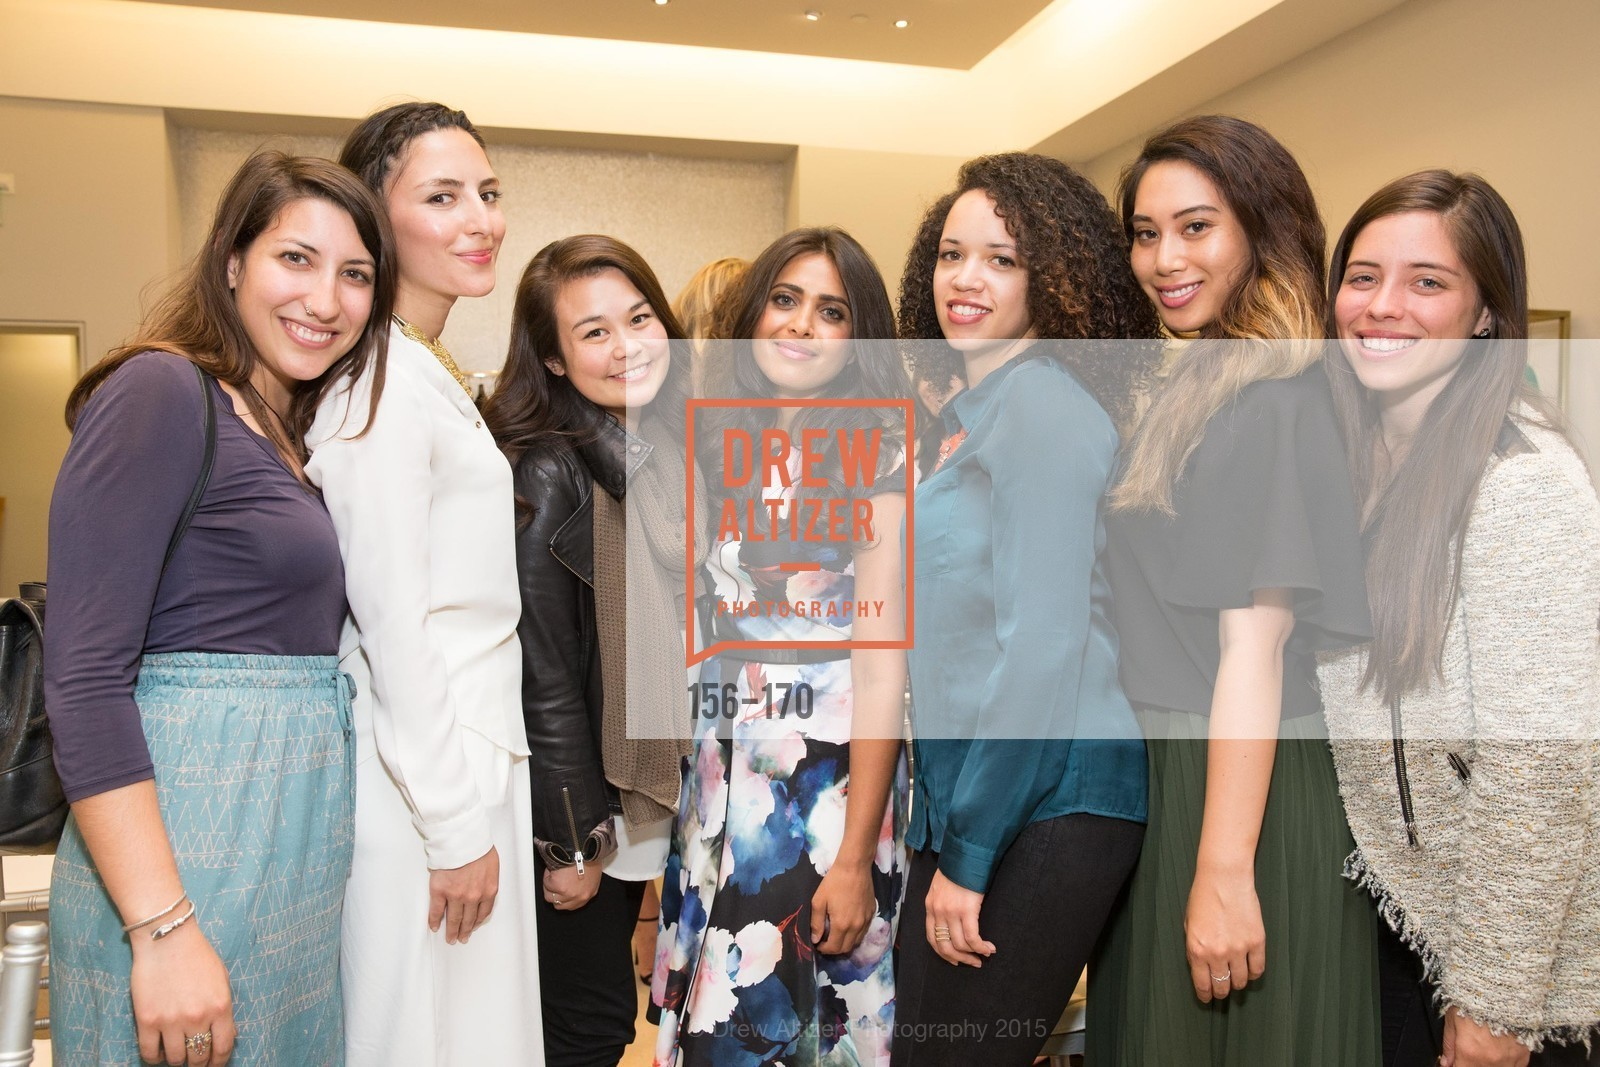 Elika Mahdavi, Ruzwana Bashir, Adrianna Galvin, Kharissa Fernando, ELLE & ST. JOHN In Converstation with Exceptional Women, St. John Boutique. 767A Market Street, Suite B, June 16th, 2015,Drew Altizer, Drew Altizer Photography, full-service agency, private events, San Francisco photographer, photographer california